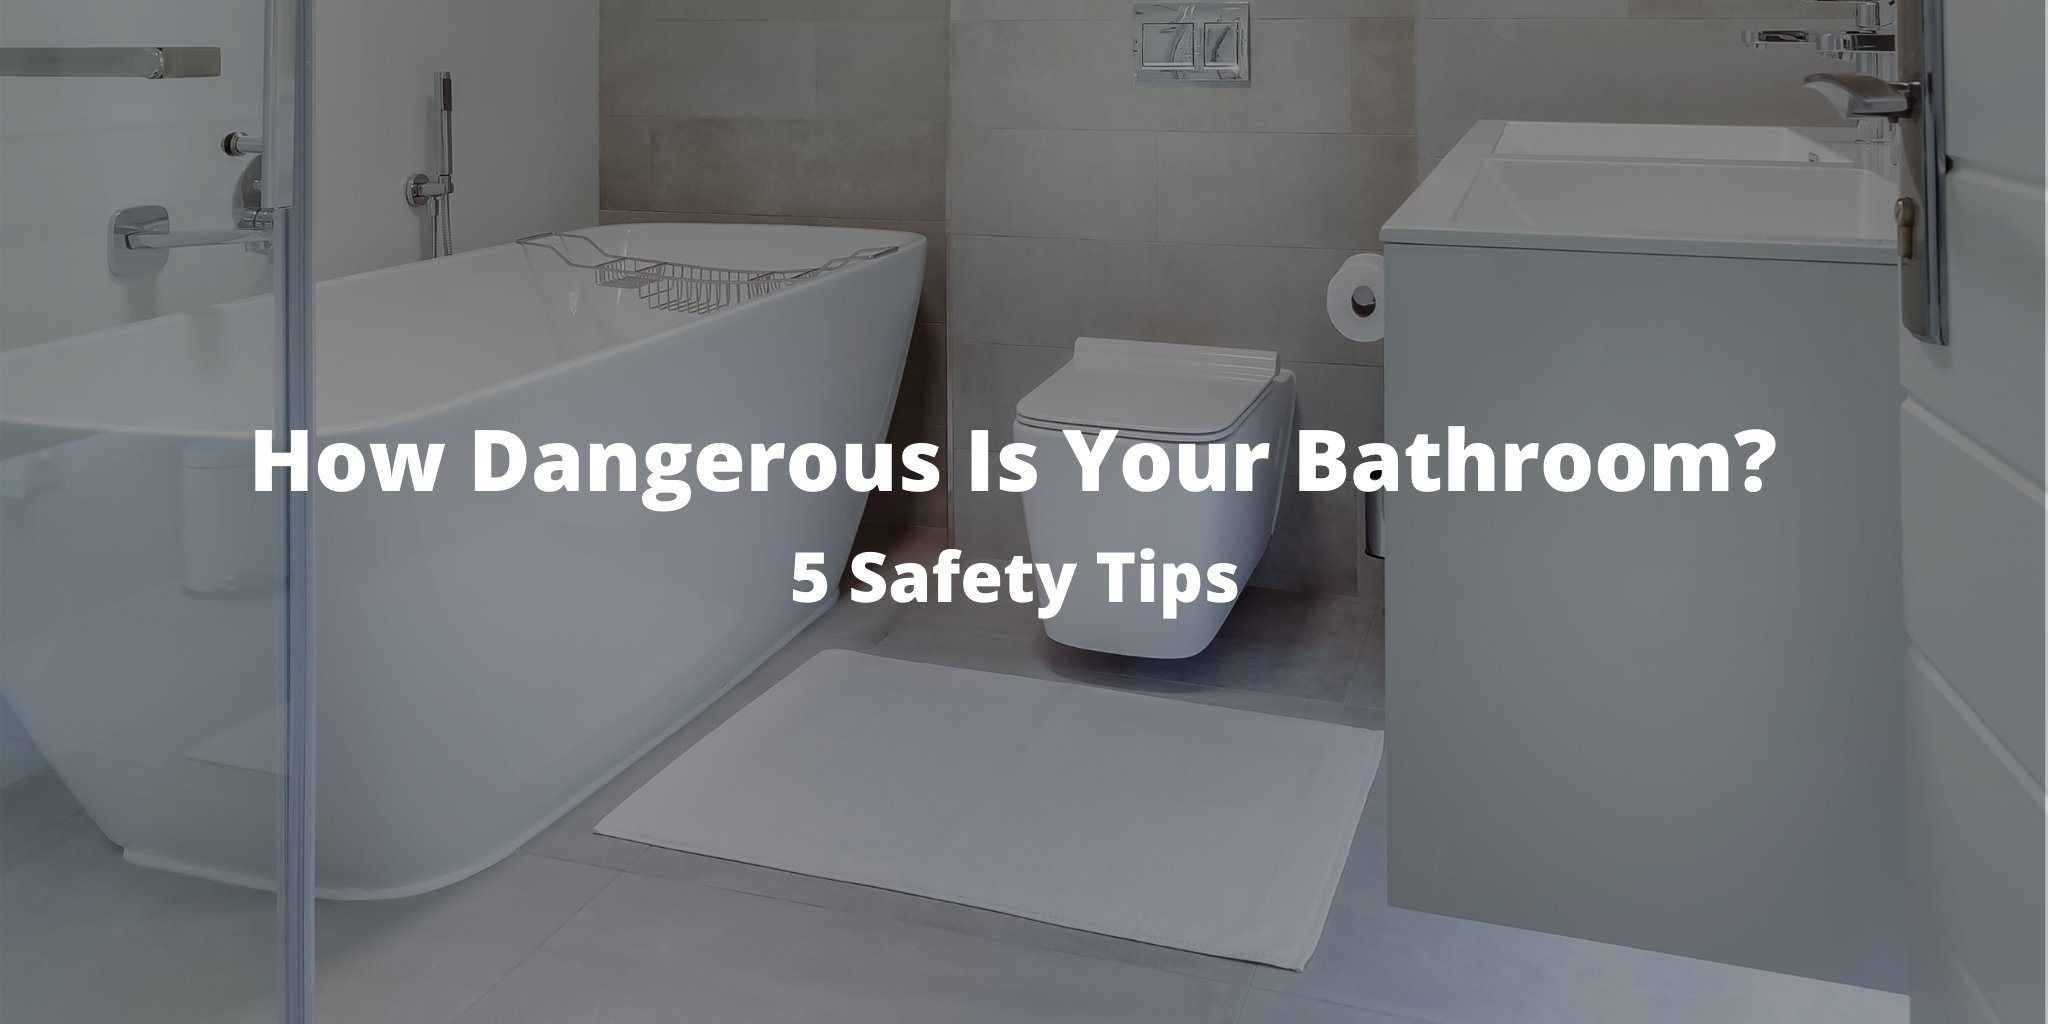 How Dangerous Is Your Bathroom? 5 Safety Tips